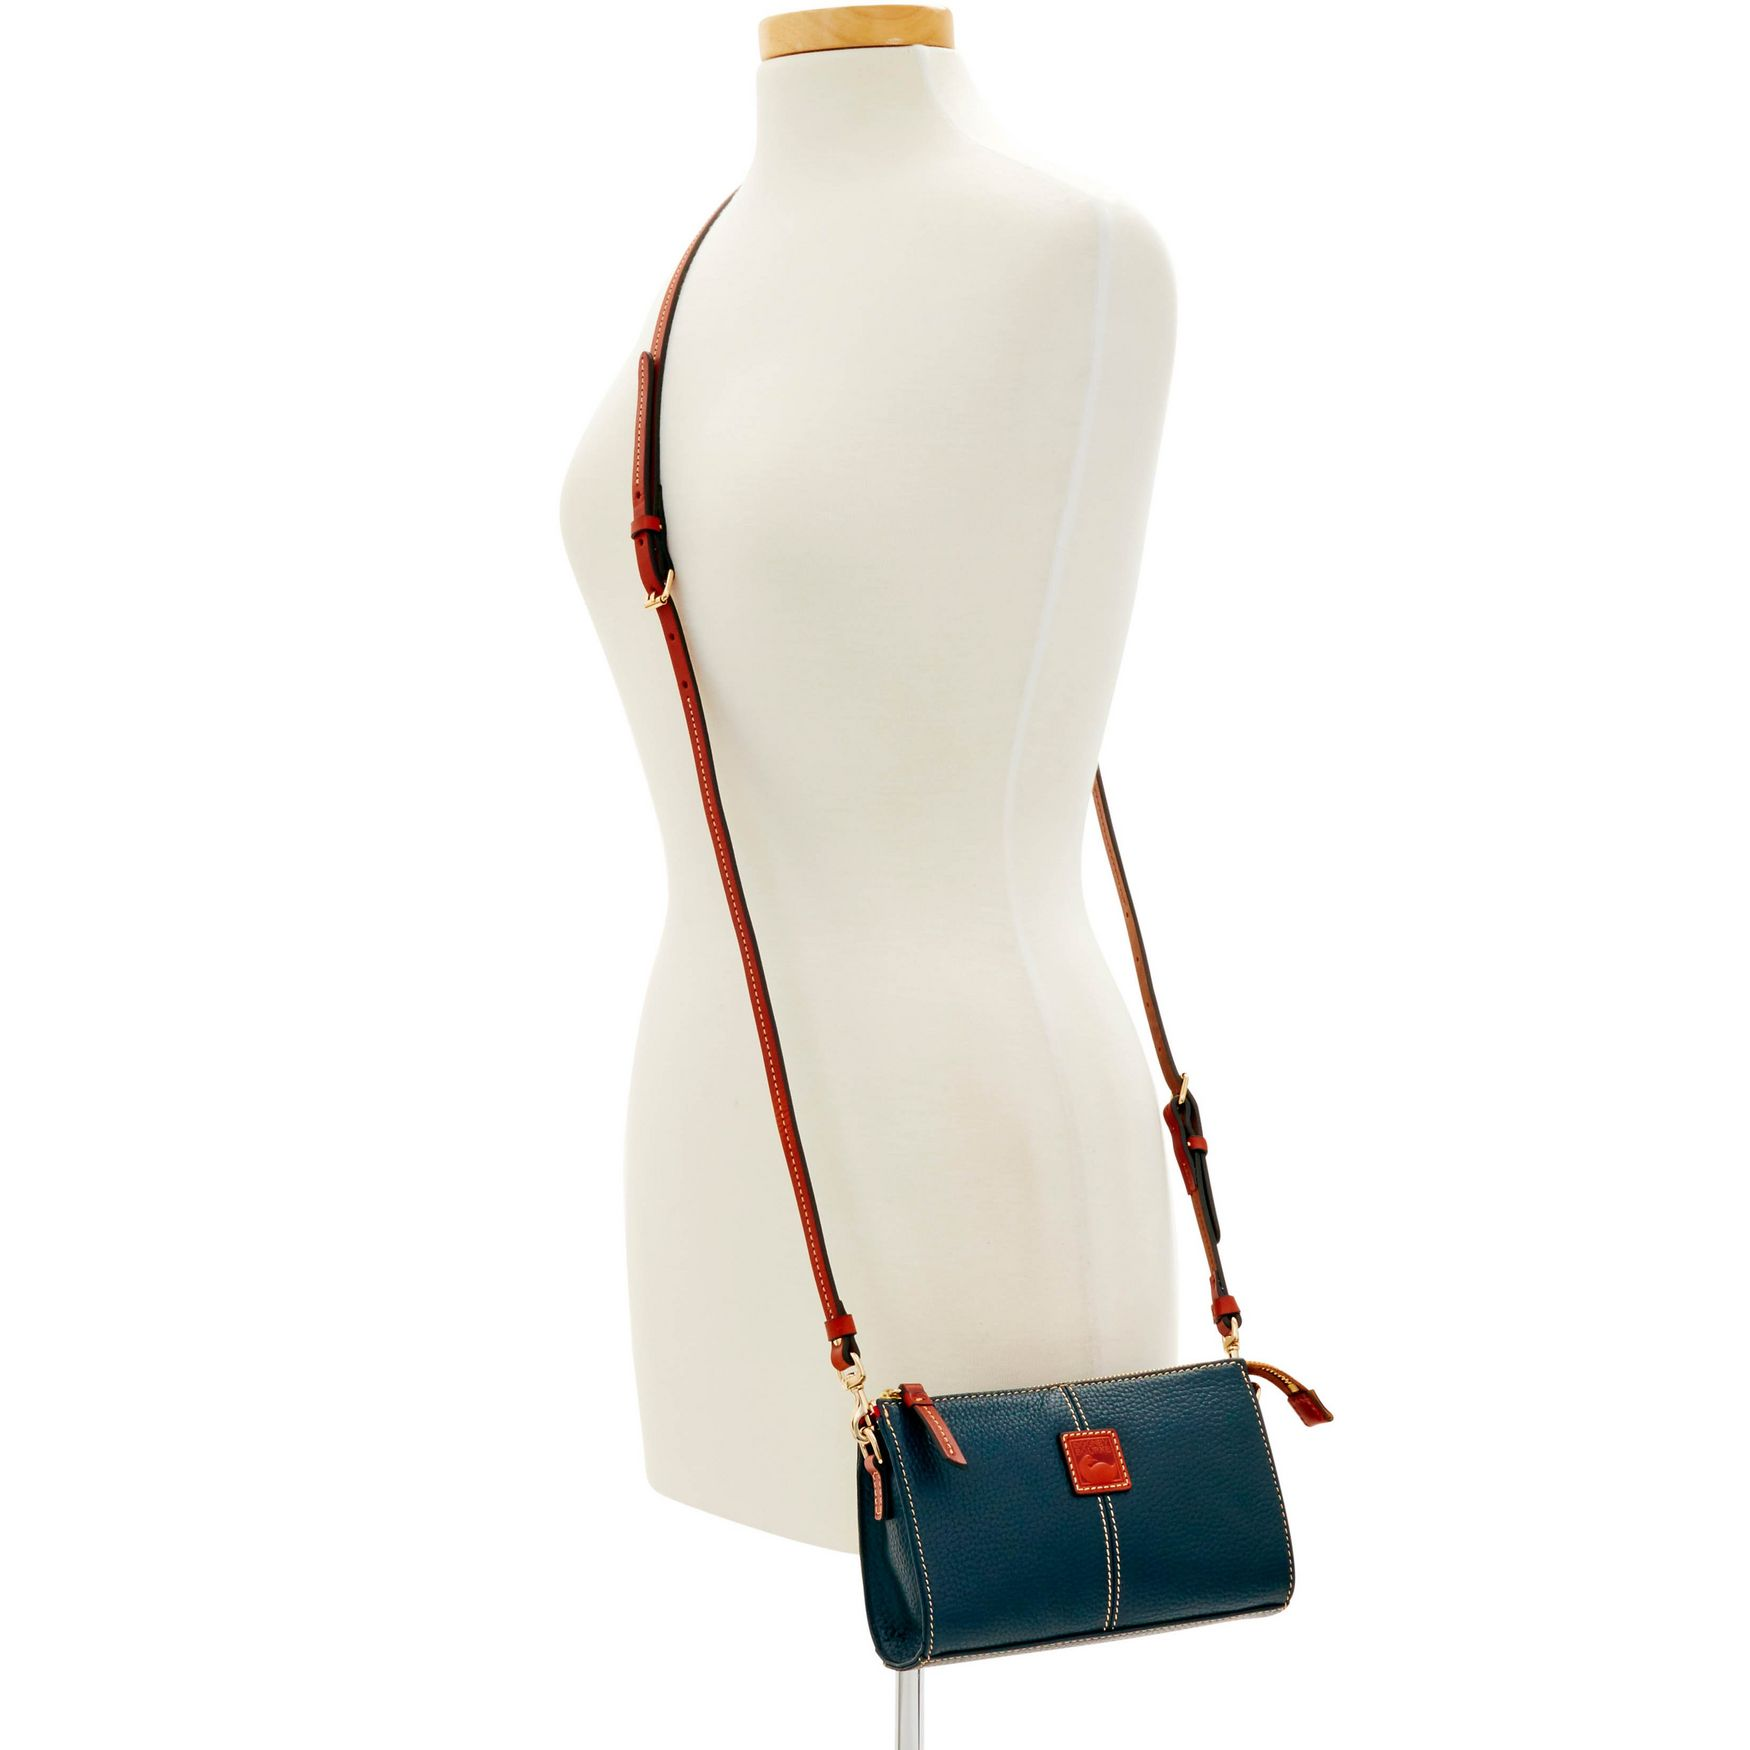 Dooney-amp-Bourke-Pebble-Grain-Small-Janine-Crossbody-Shoulder-Bag thumbnail 38